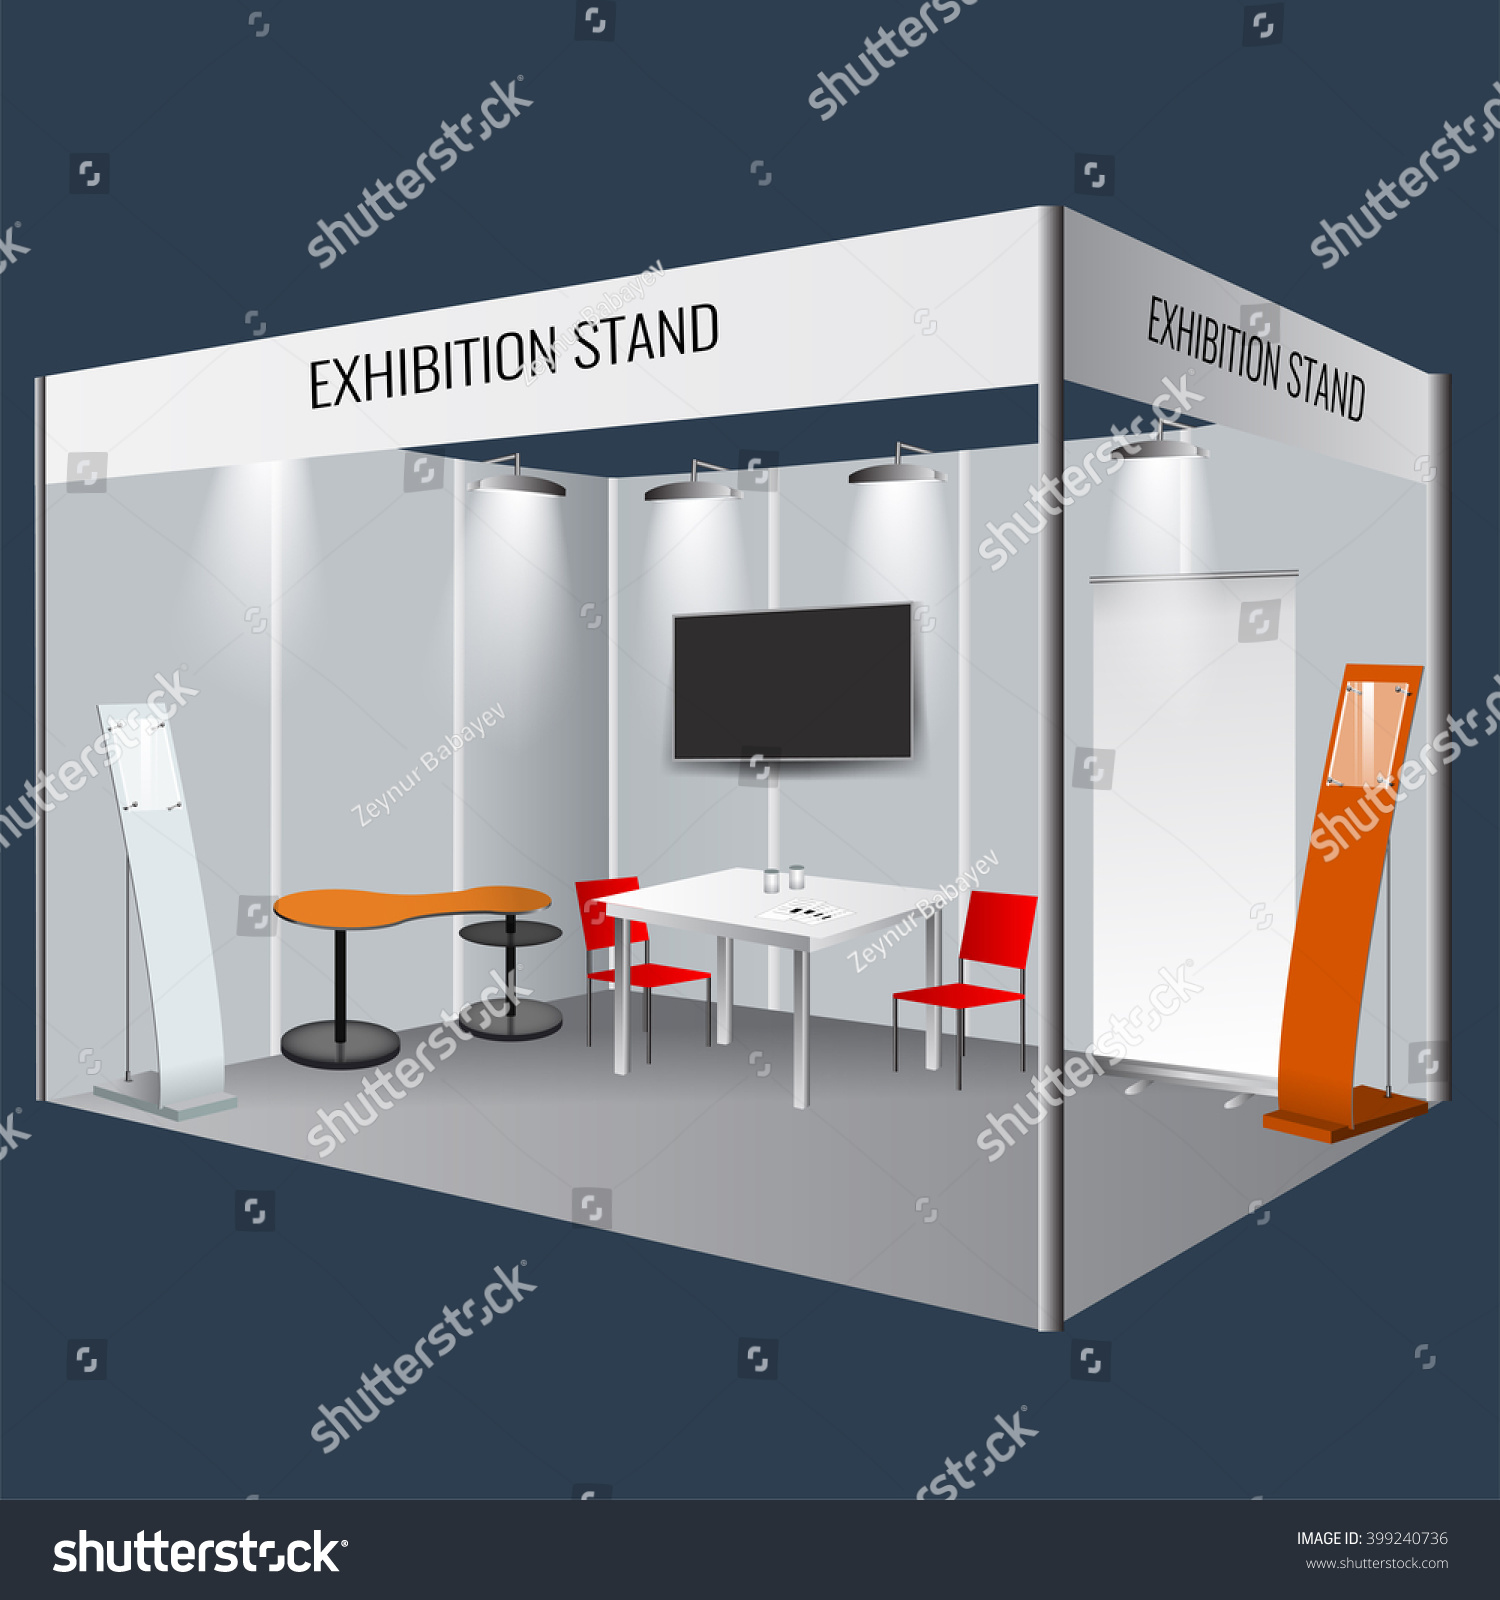 Exhibition Stand Design Vector : Illustrated unique creative exhibition stand display stock